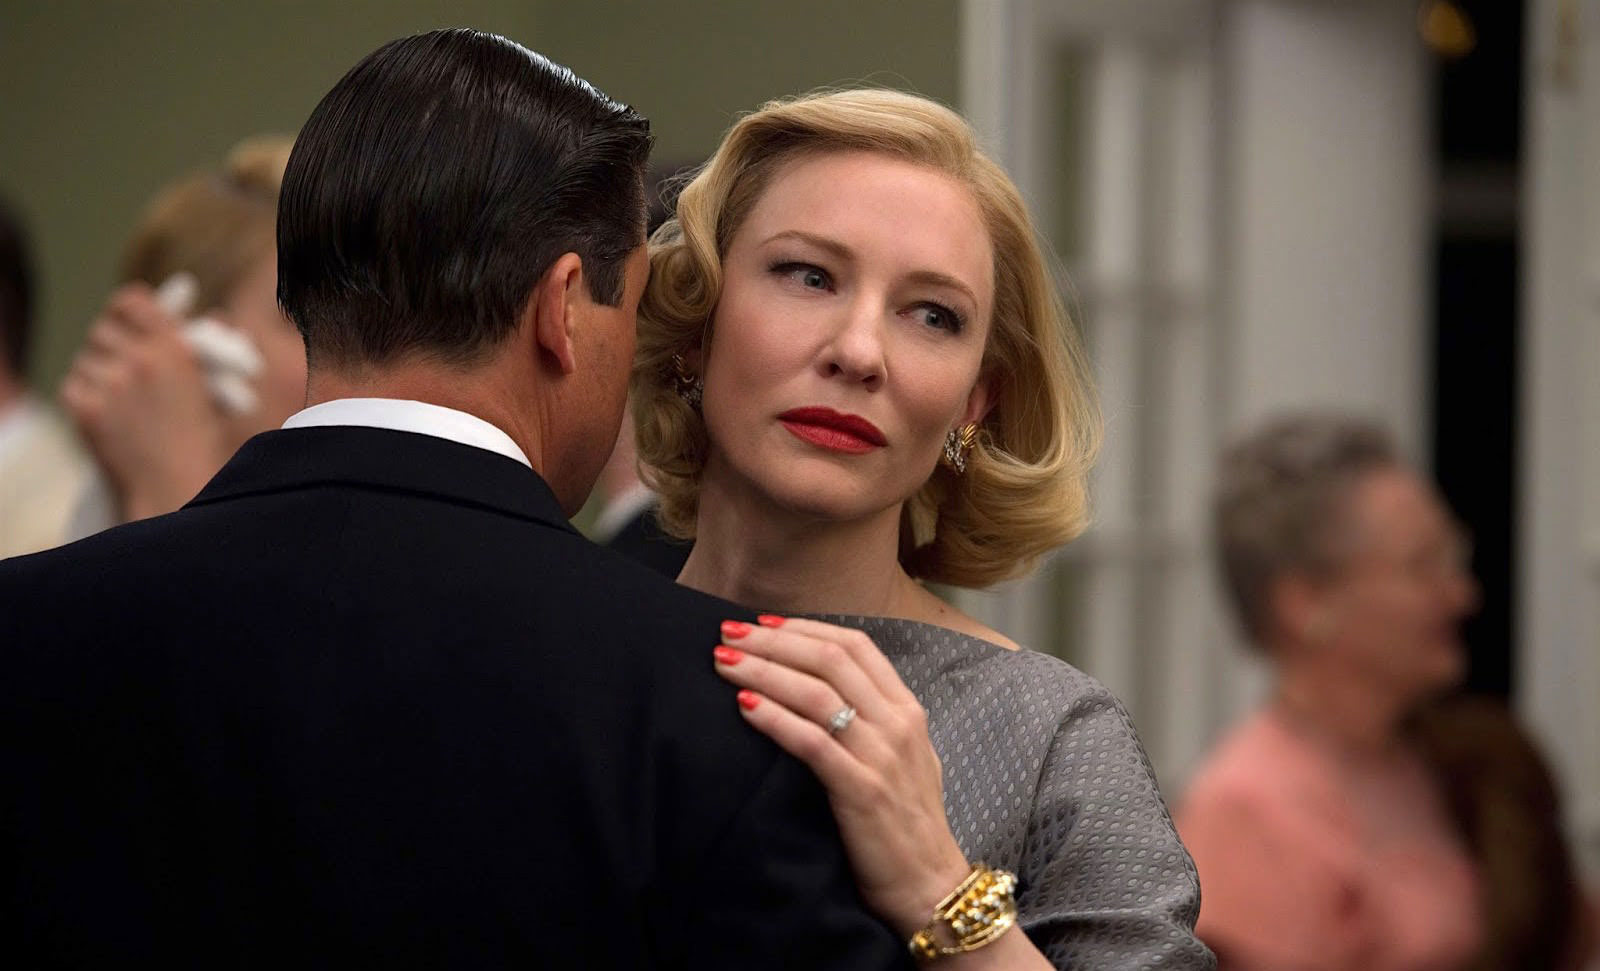 Cate Blanchett as Carol and Kyle Chandler as her husband Harge Aird in Carol, 2015